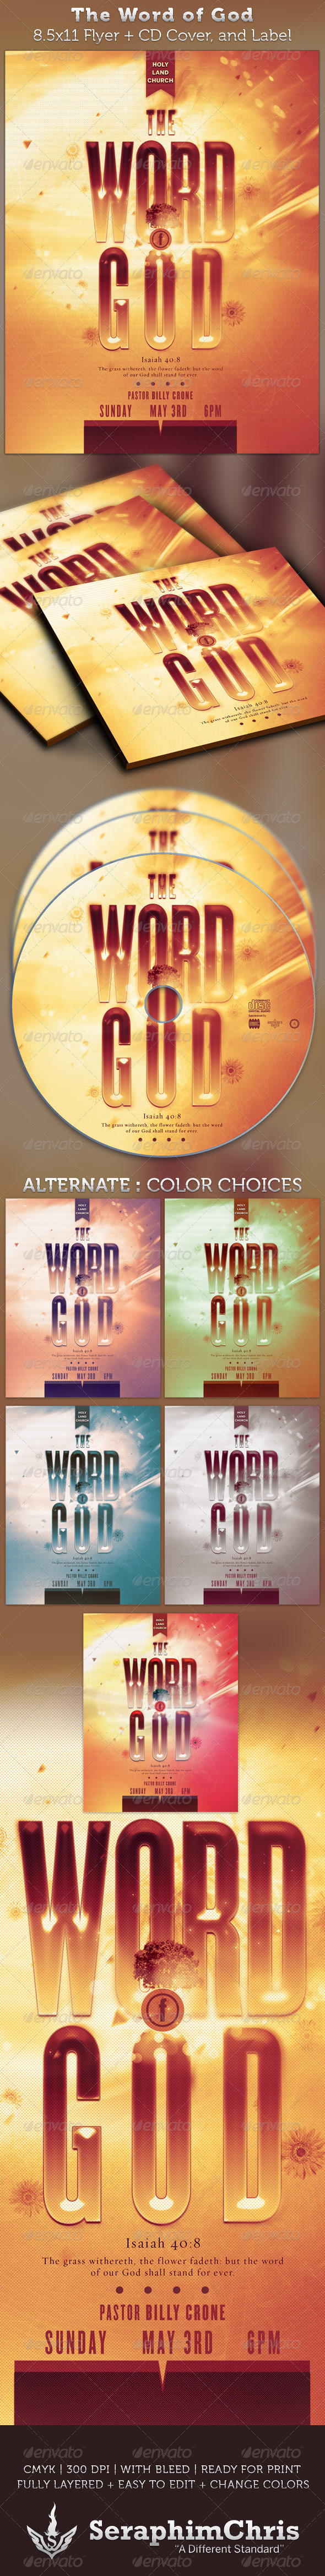 The Word of God Full Page Flyer and CD Cover - Church Flyers